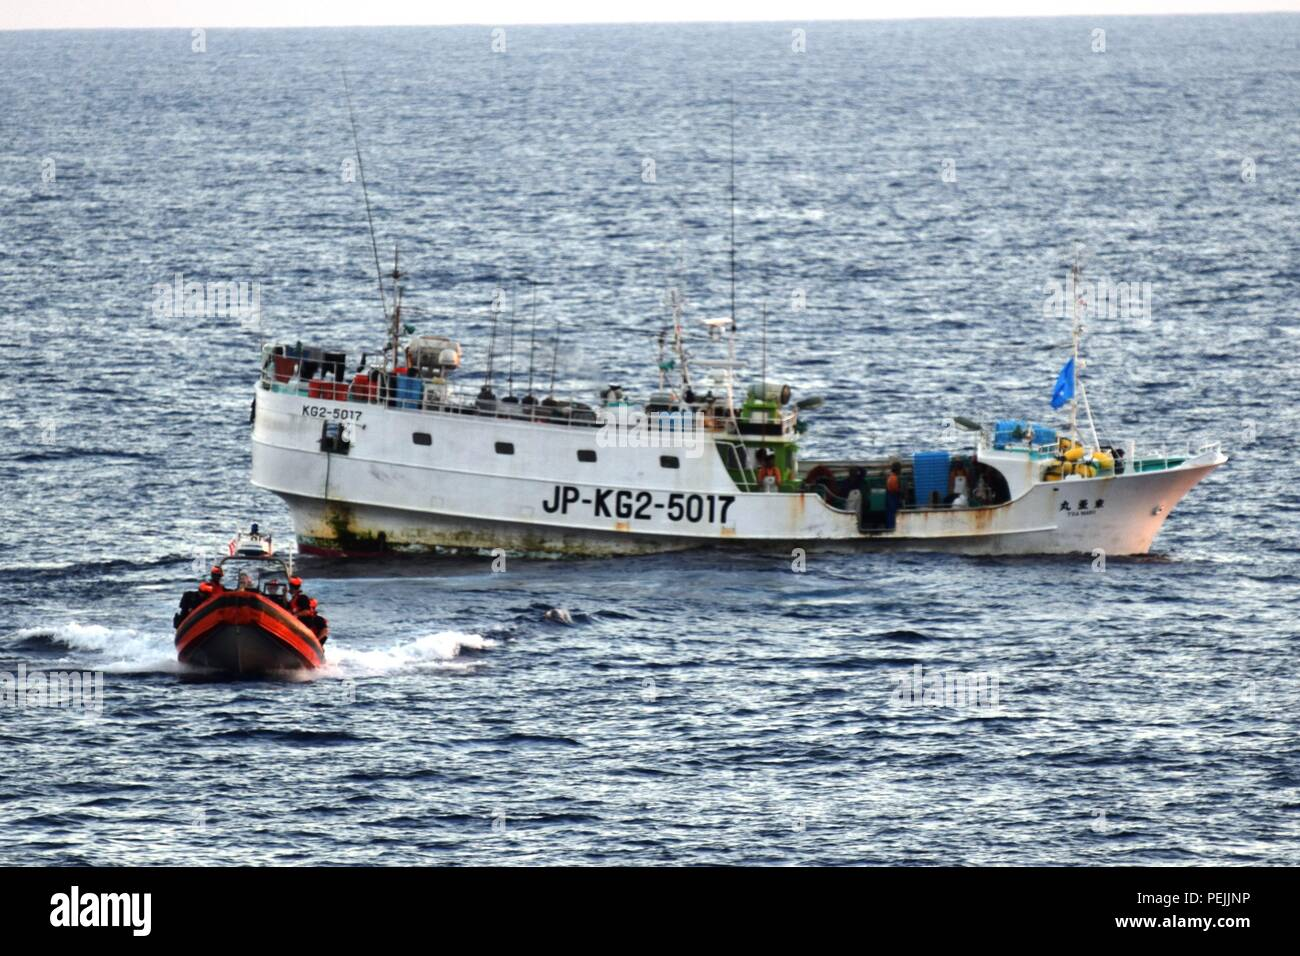 A Coast Guard Cutter Sequoia (WLB 215) boarding team along with an Federated States of Micronesia National Police shiprider return from boarding a 48-foot Japanese-flagged long line fishing vessel operating inside the FSM exclusive economic zone, August 2015. Patrolling the FSM EEZ, Sequoia travelled over 4,068 miles and conducted 10 law enforcement boardings, as well as providing deterrence for illegal fishing activity and strengthening international partnerships. All boardings were conducted under the FSM-U.S. Bilateral Agreement. (U.S. Coast Guard photo by Lt. Jeffrey West/Released) - Stock Image